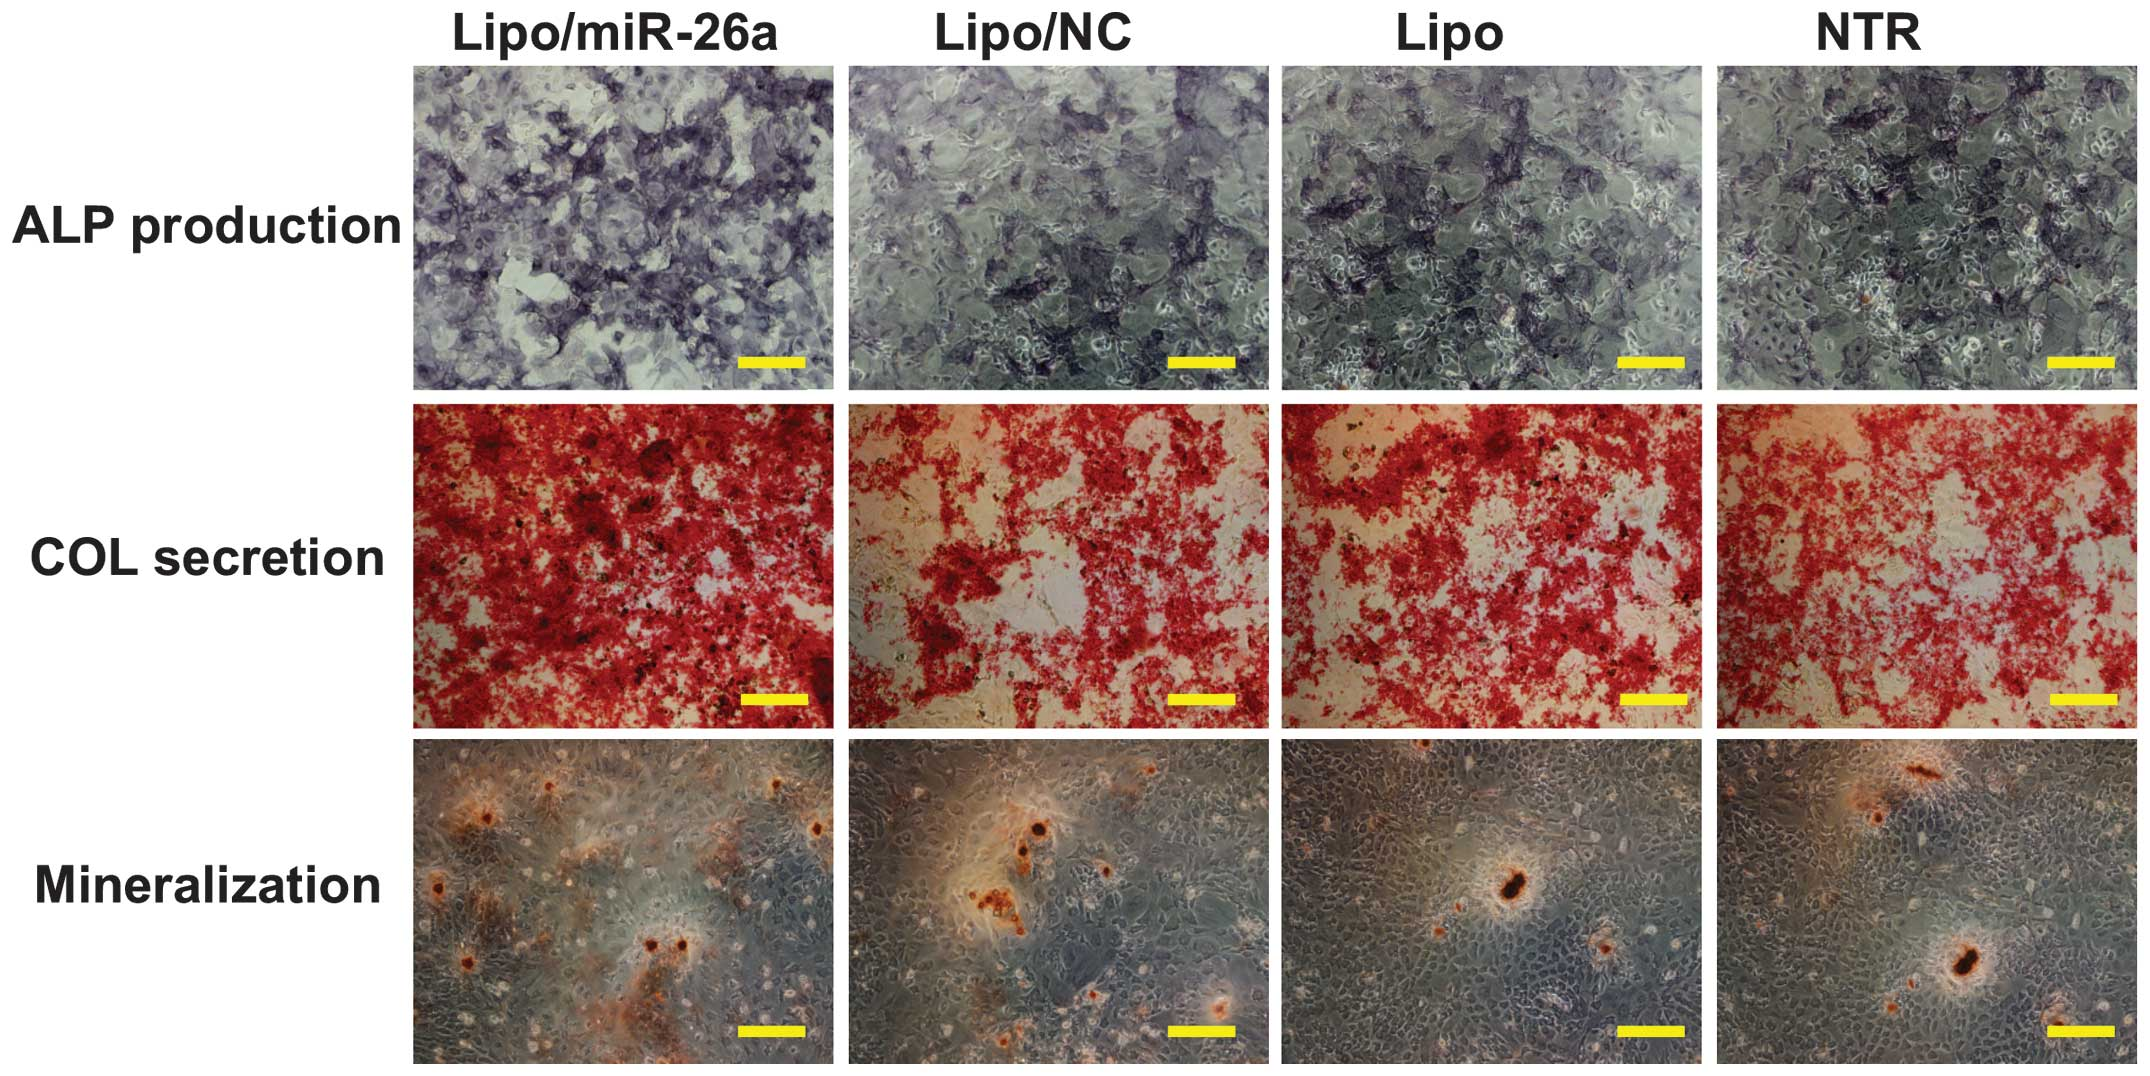 Alkaline phosphatase staining to confirm stemness of mESC